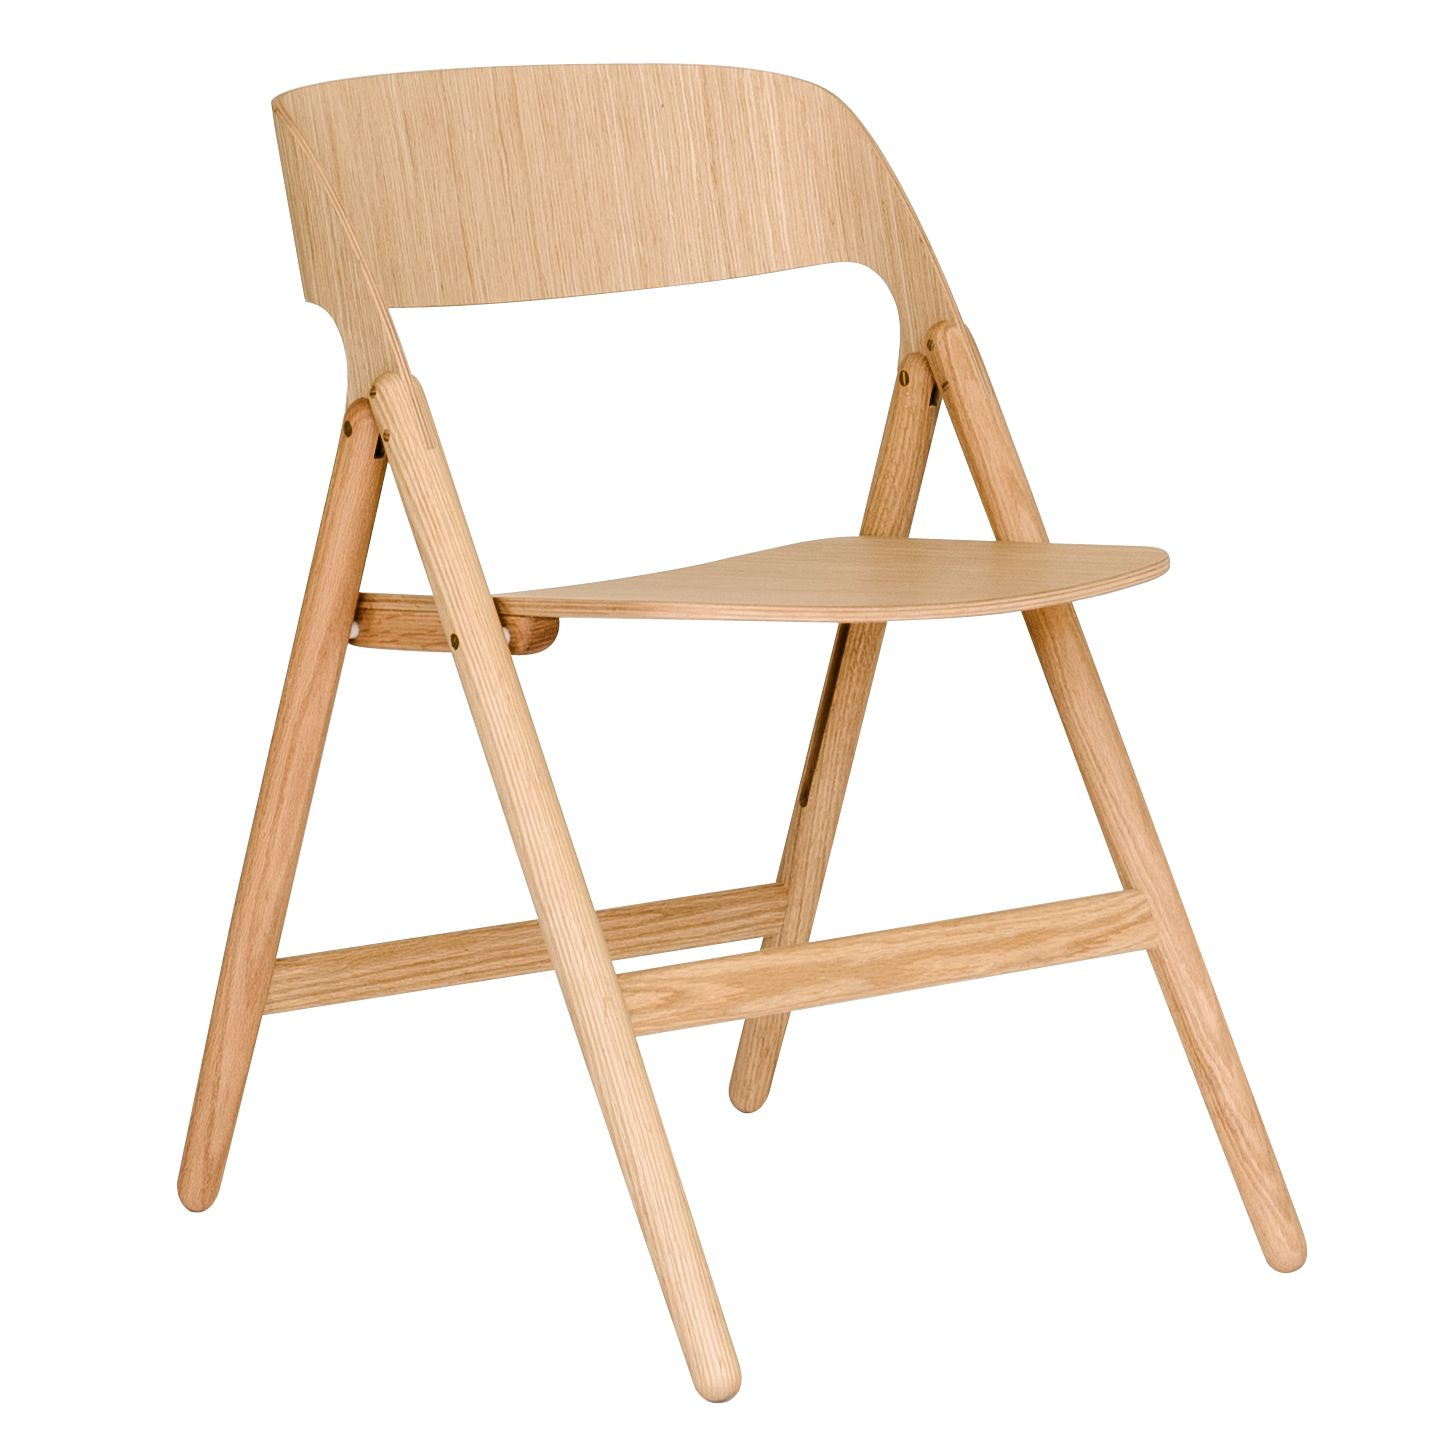 Case David Irwin for Case Narin Folding Chair, Oak